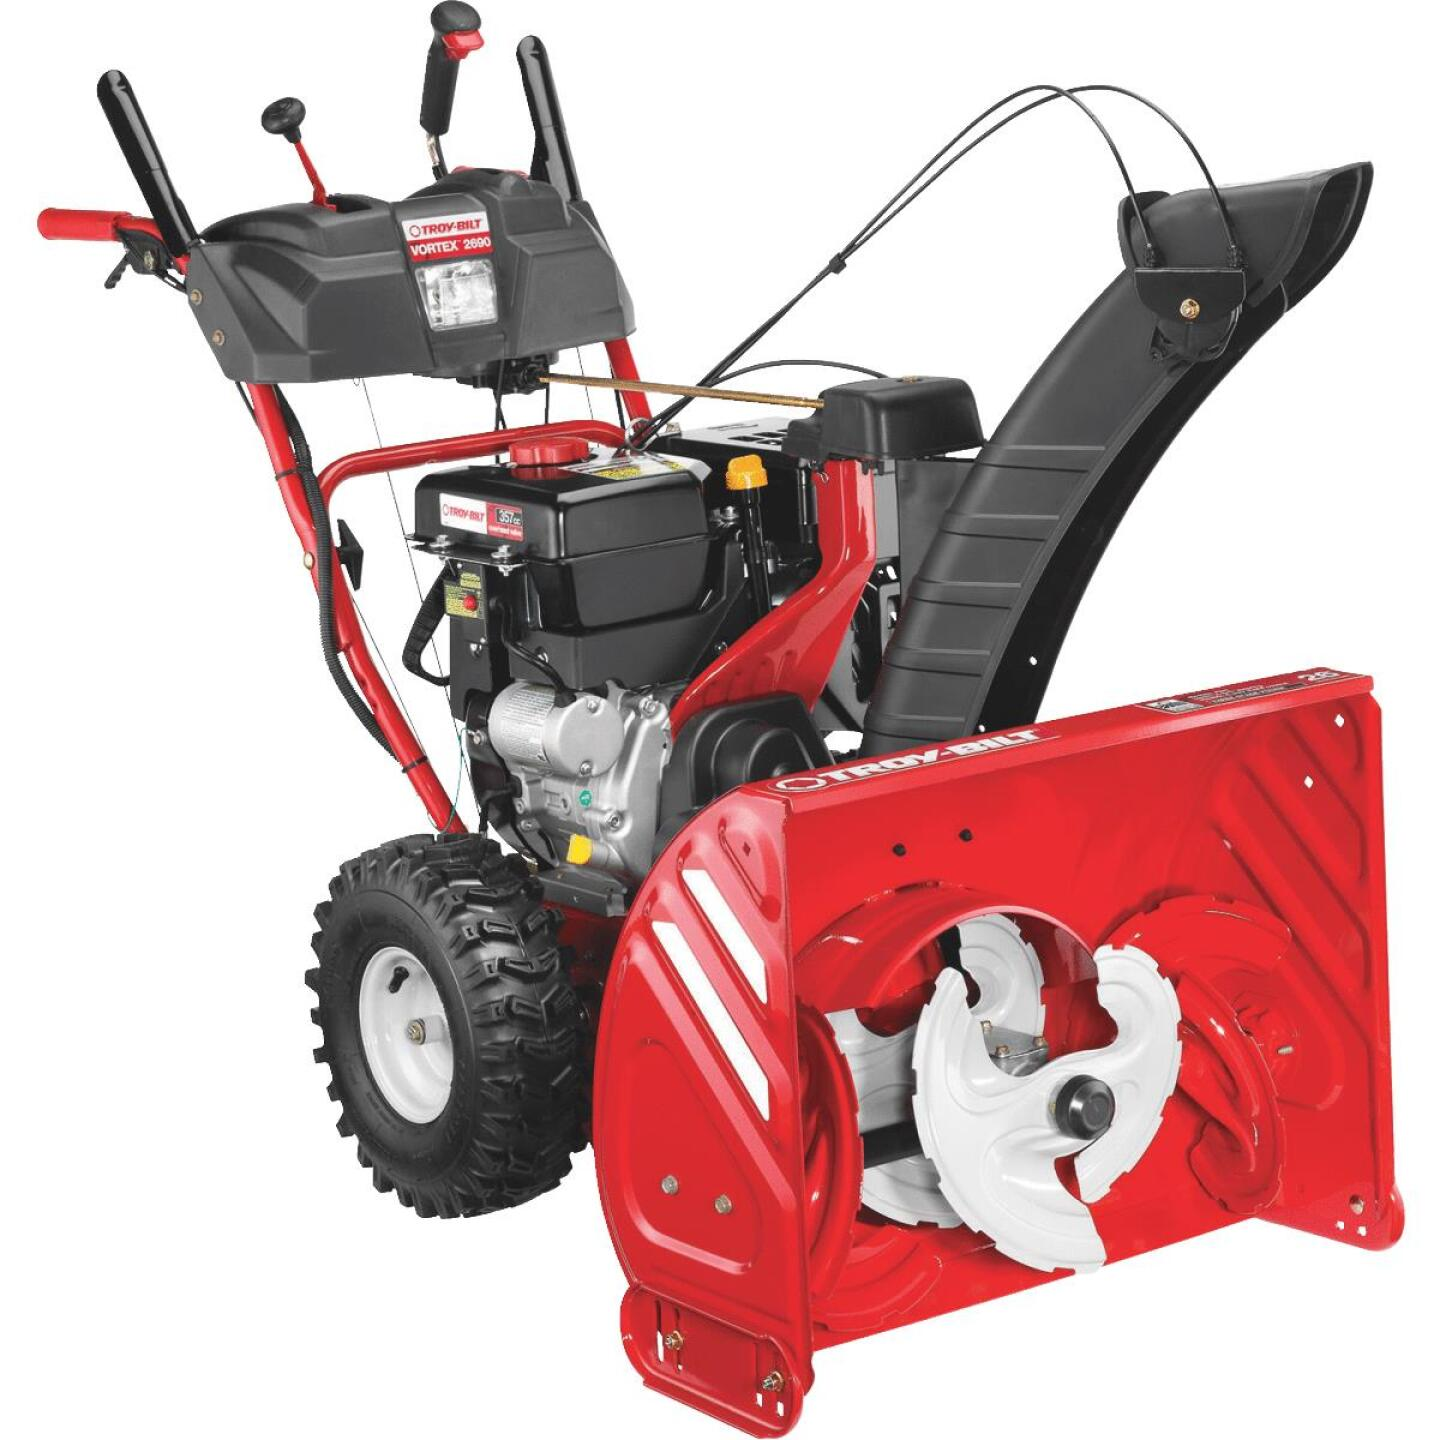 Troy-Bilt Vortex 26 In. 357cc 3-Stage Gas Snow Blower Image 1